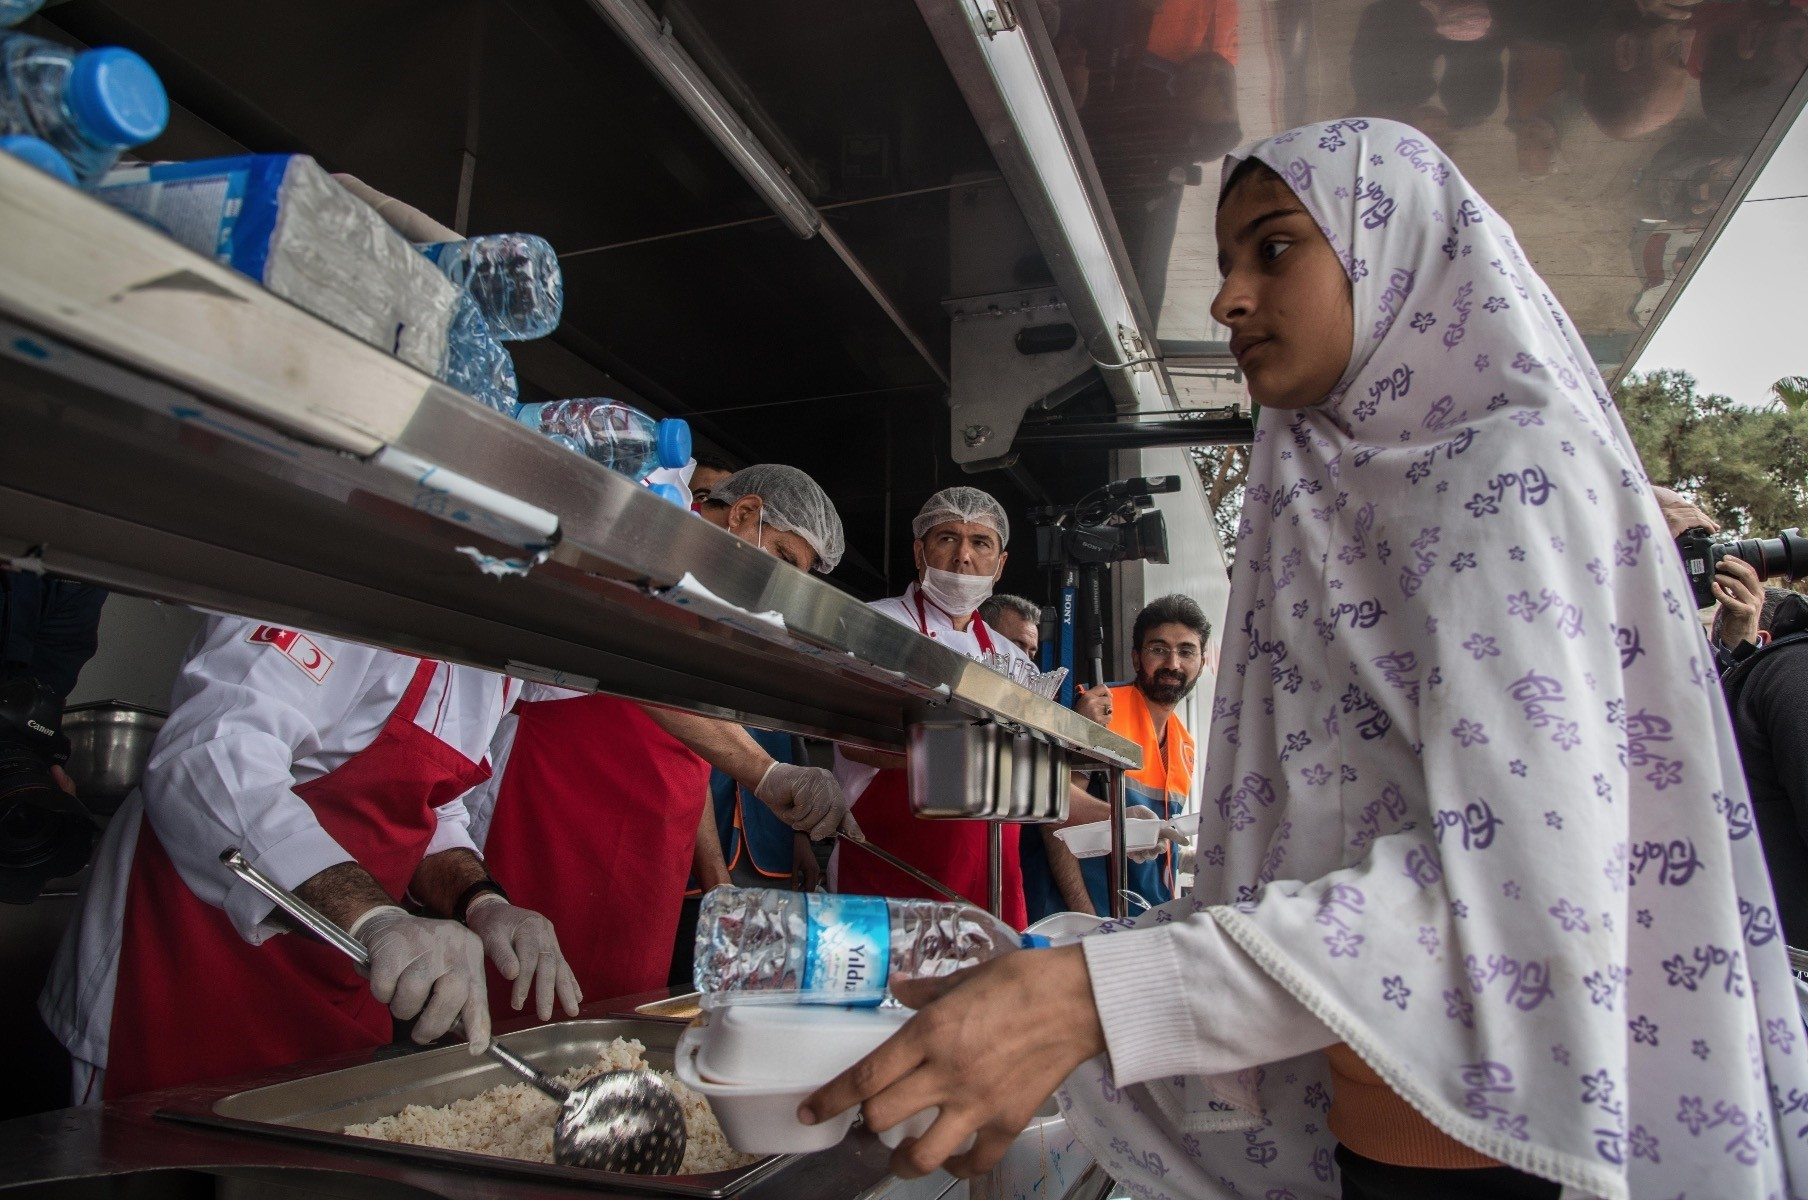 Turkish Red Crescent President Kerem Ku0131nu0131k said that his organization put a mobile kitchen and a mobile bakery into action which distribute food to 5,000 people on a daily basis.